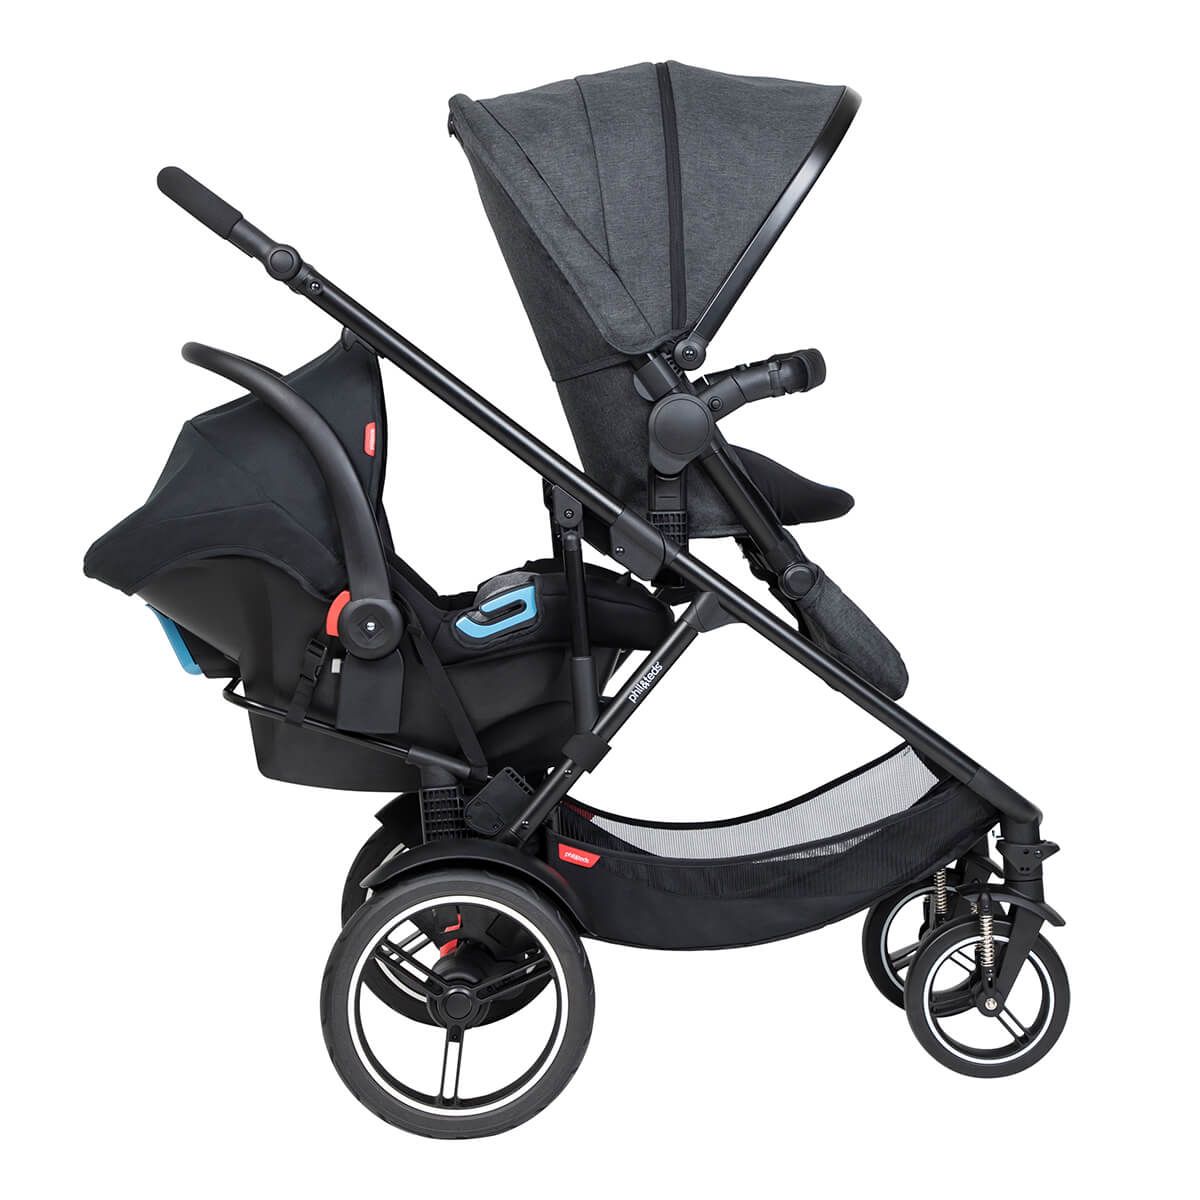 https://cdn.accentuate.io/4363393695797/19118870659125/philteds-voyager-buggy-in-forward-facing-mode-with-travel-system-in-the-rear-v1633401663021.jpg?1200x1200